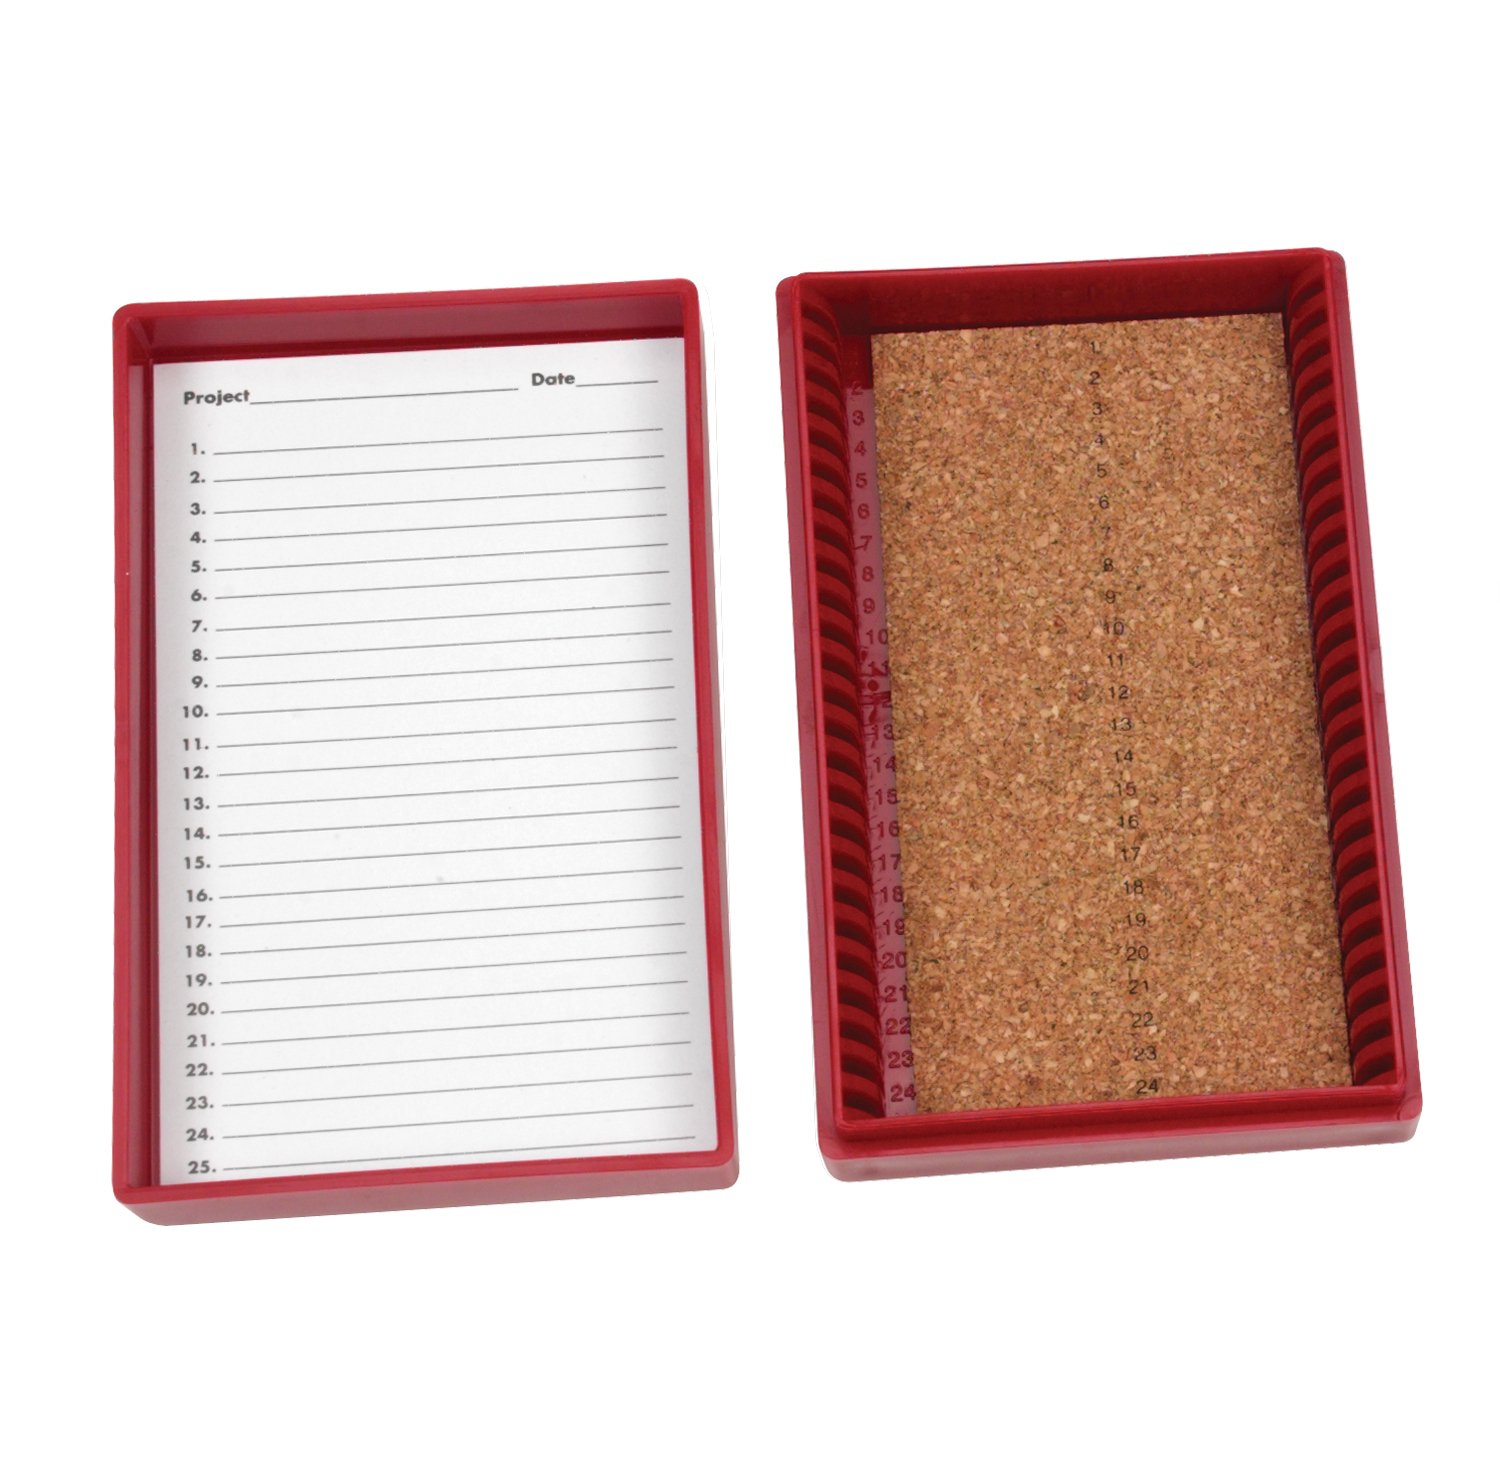 Heathrow Scientific HS15989C Premium Microscope Slide Box, 25-Place, Cork, ABS, Red